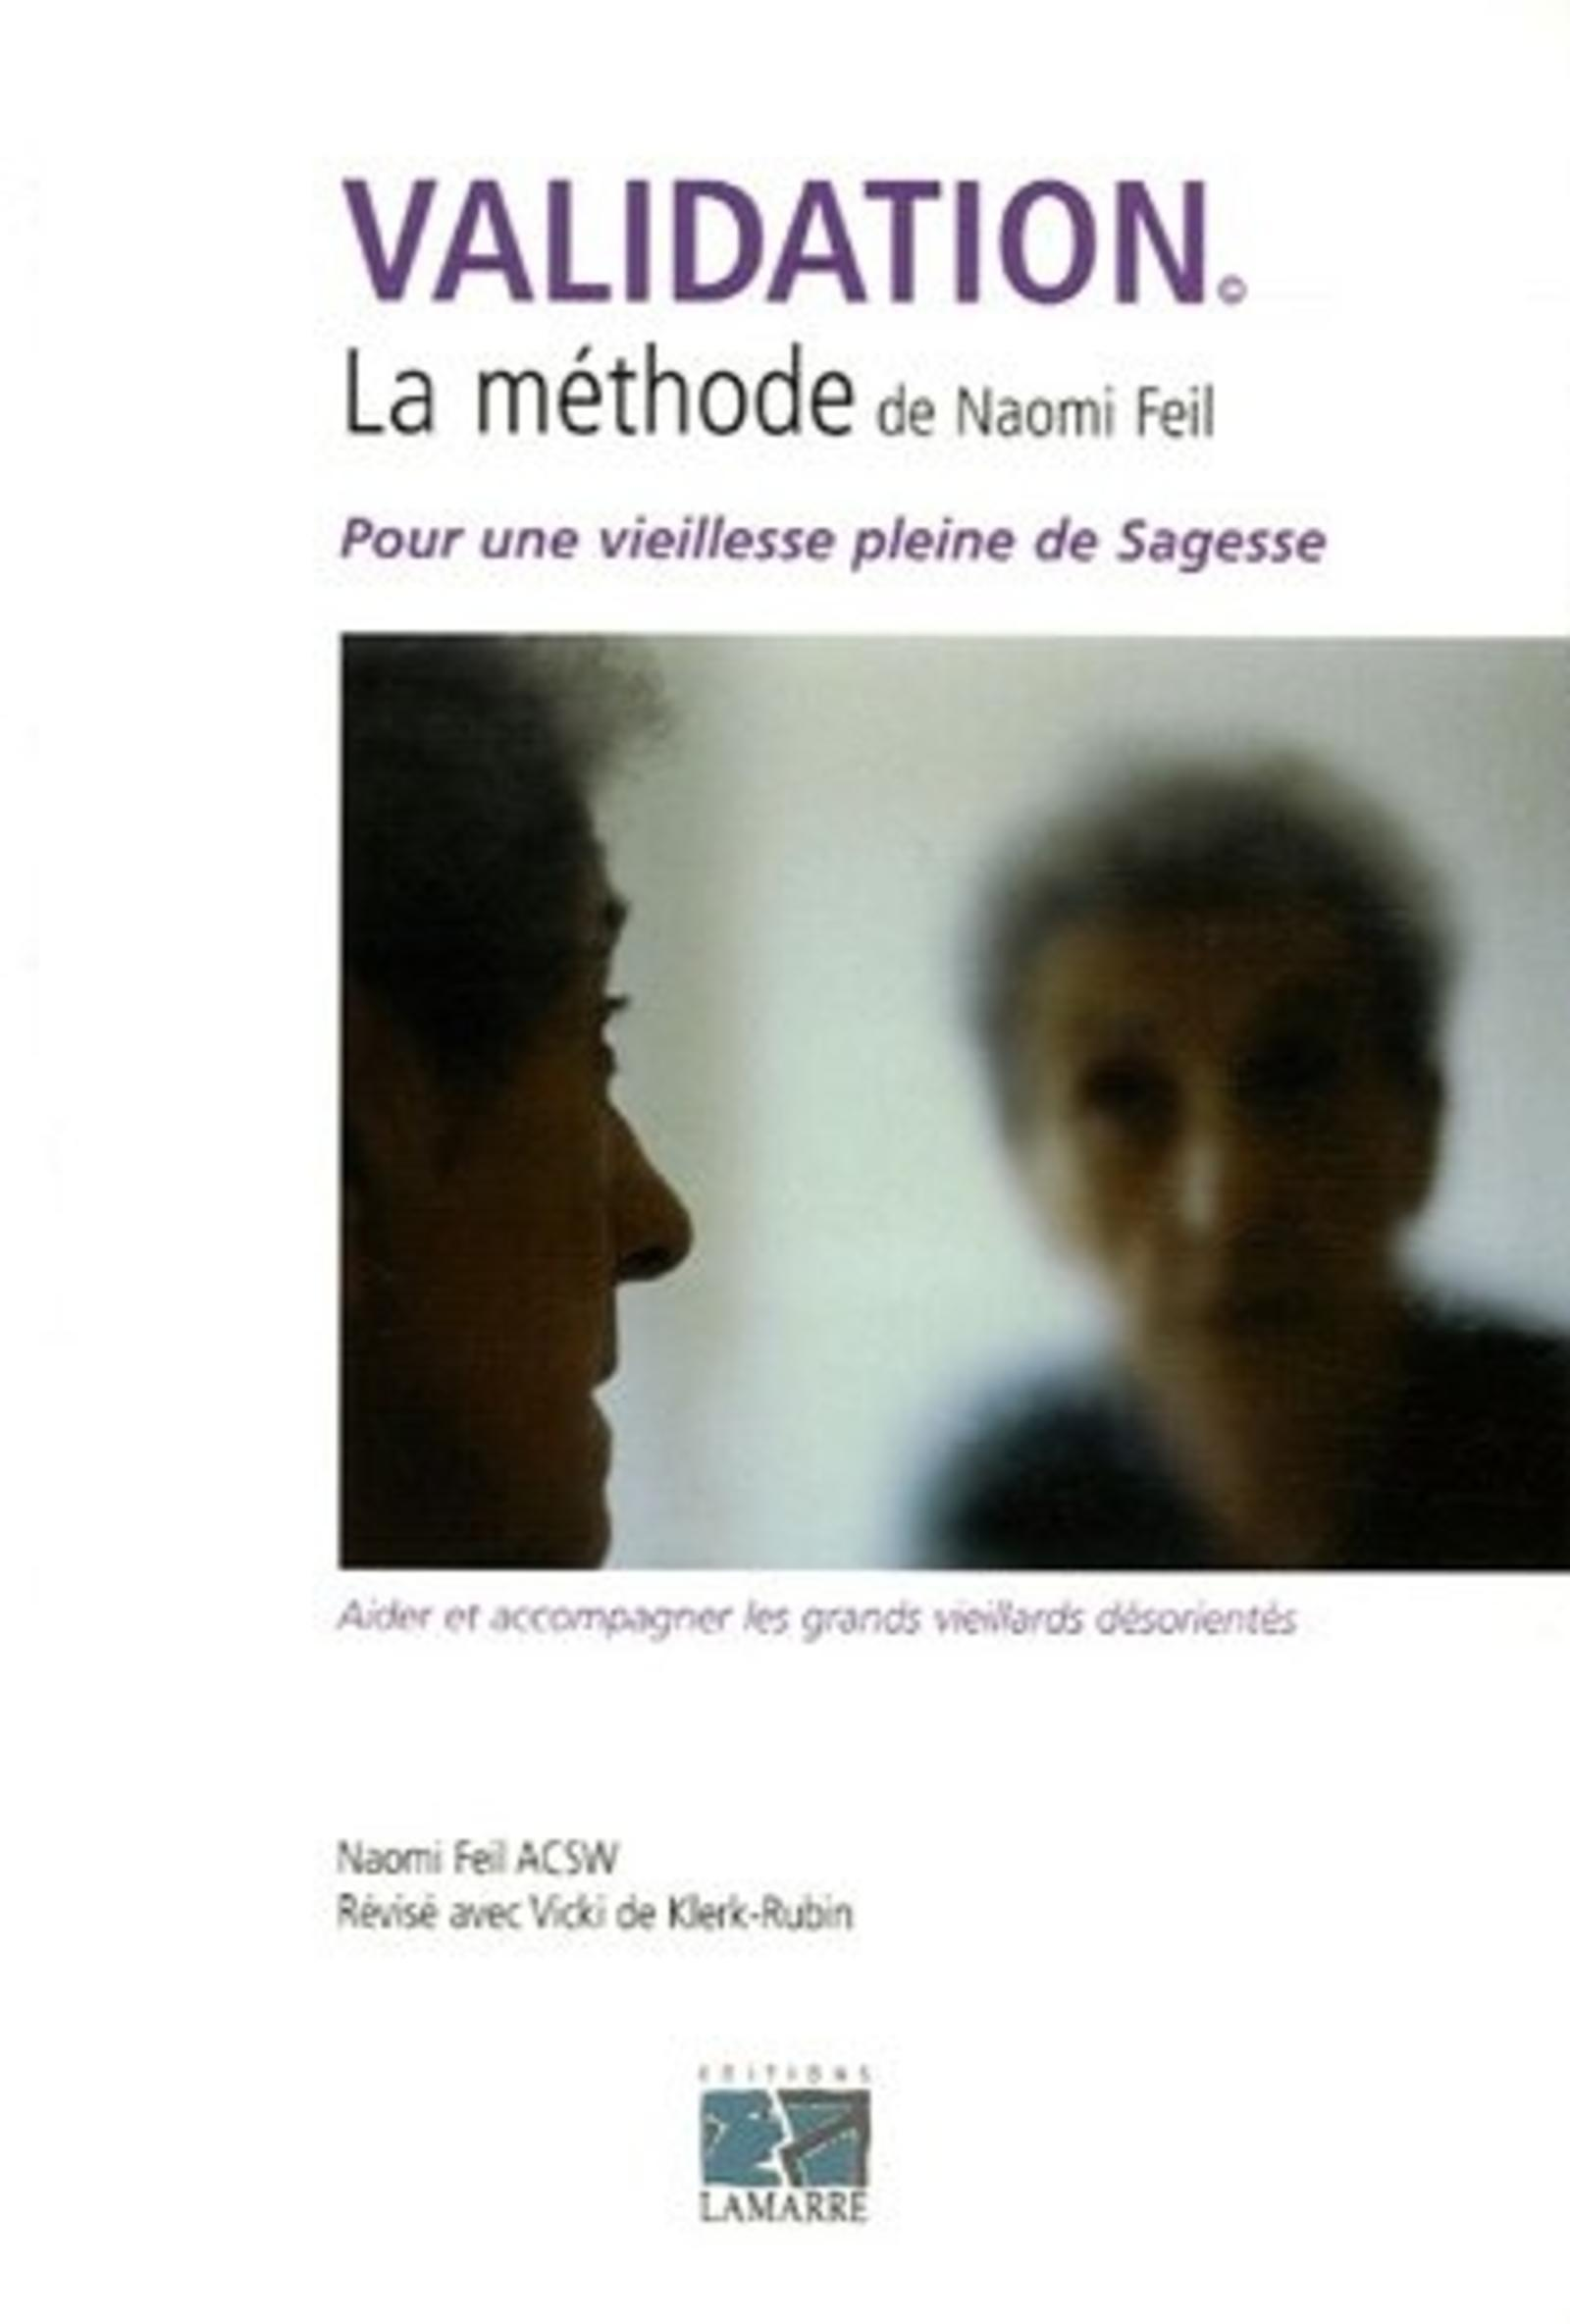 VALIDATION LA METHODE NAOMIE FEIL - LA METHODE DE NAOMI FEIL